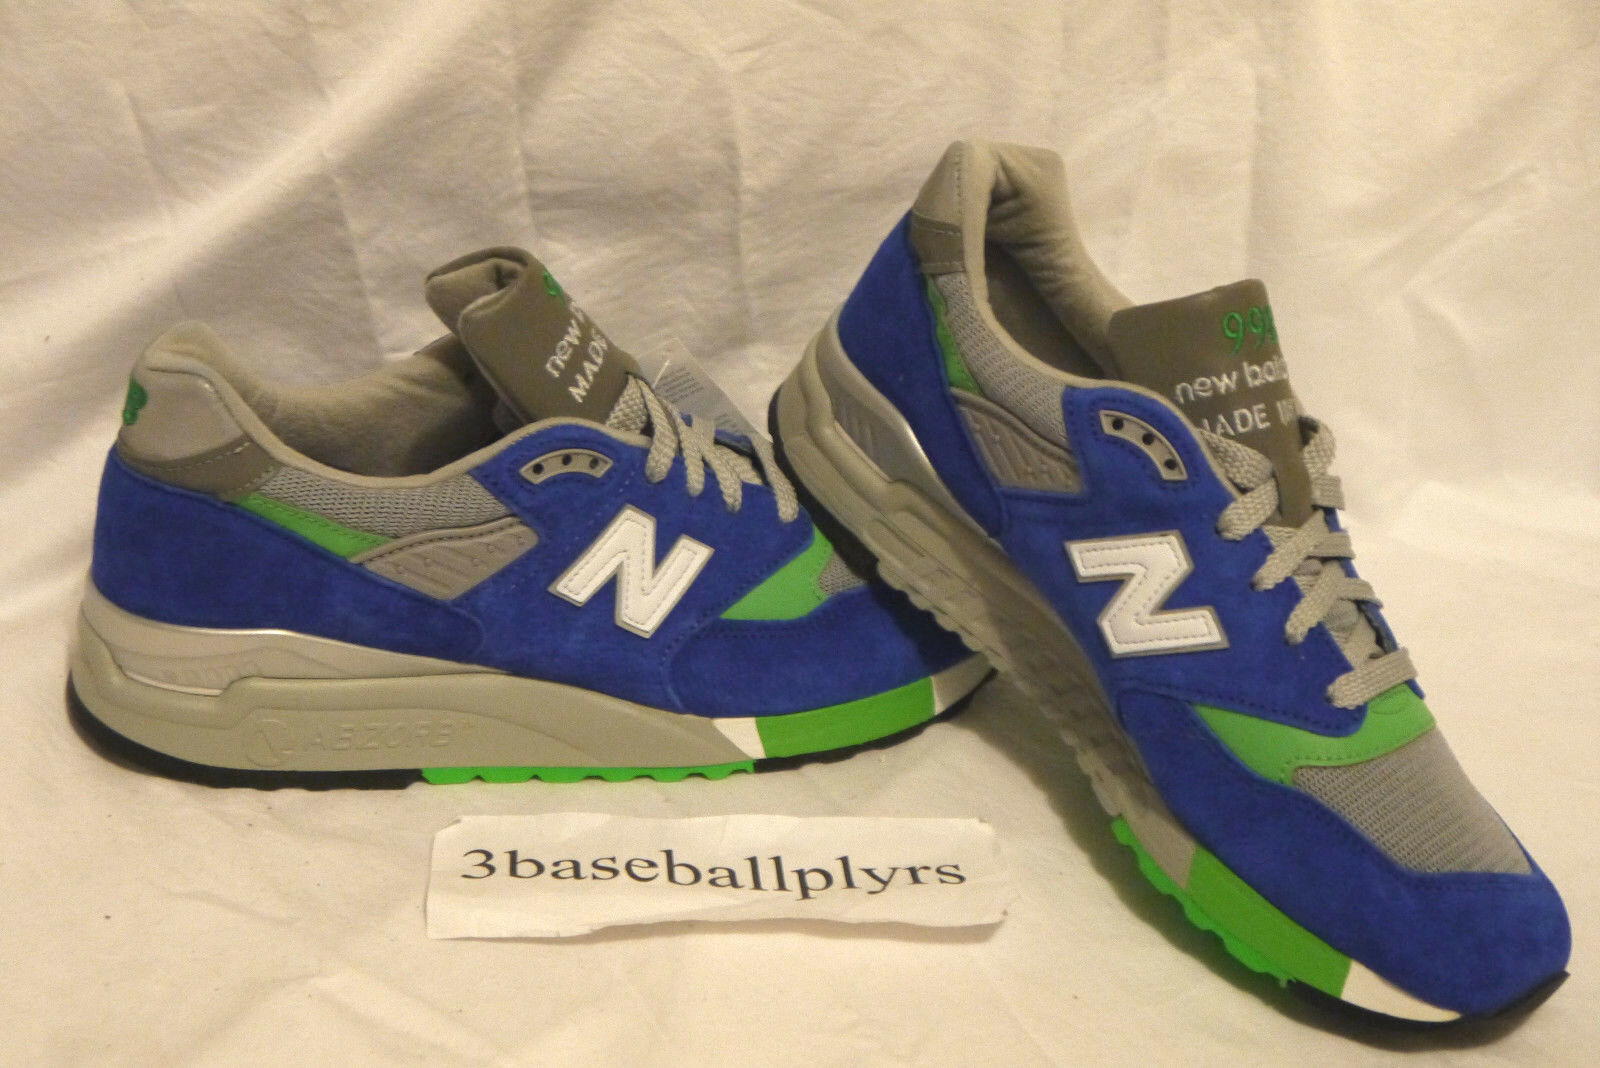 New Balance x J. Crew 998 - CHOOSE YOUR SIZE- M998JC5 Green Grey MADE IN USA